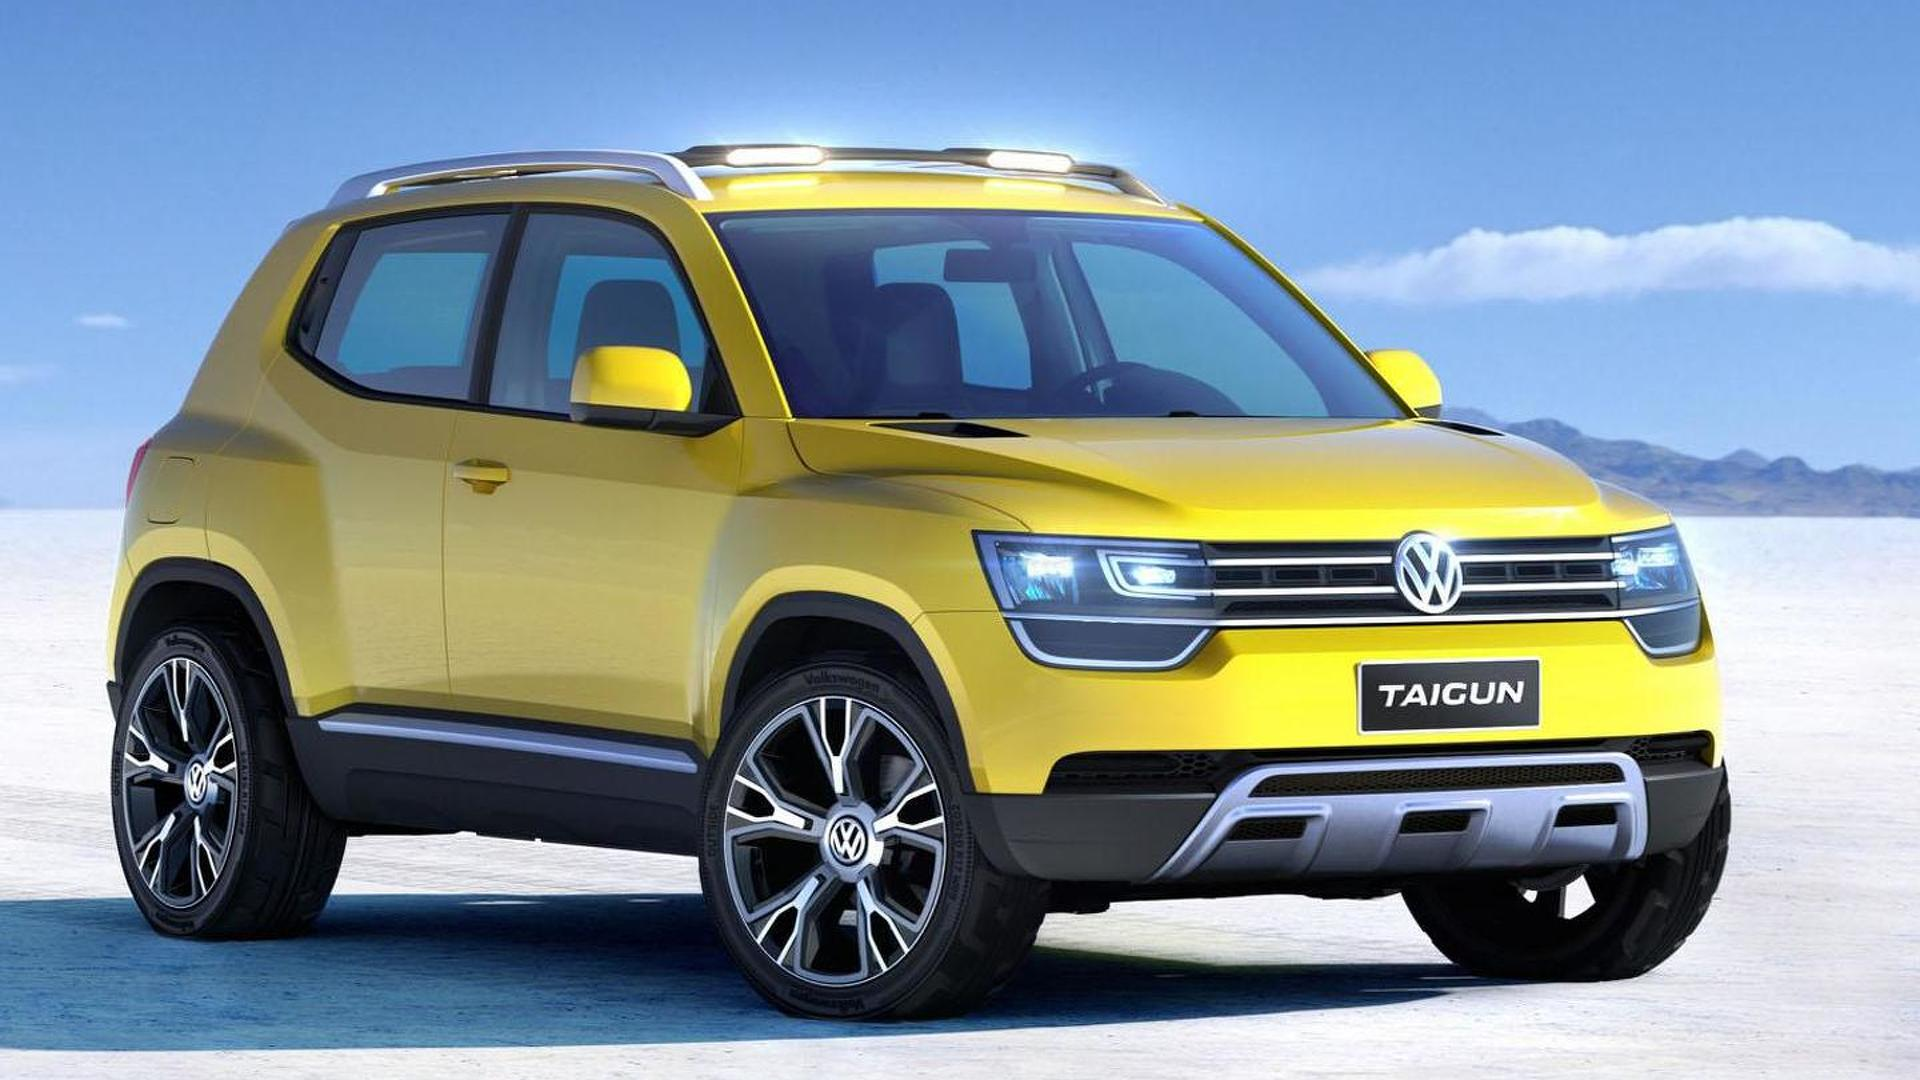 Volkswagen Taigun almost ready for production